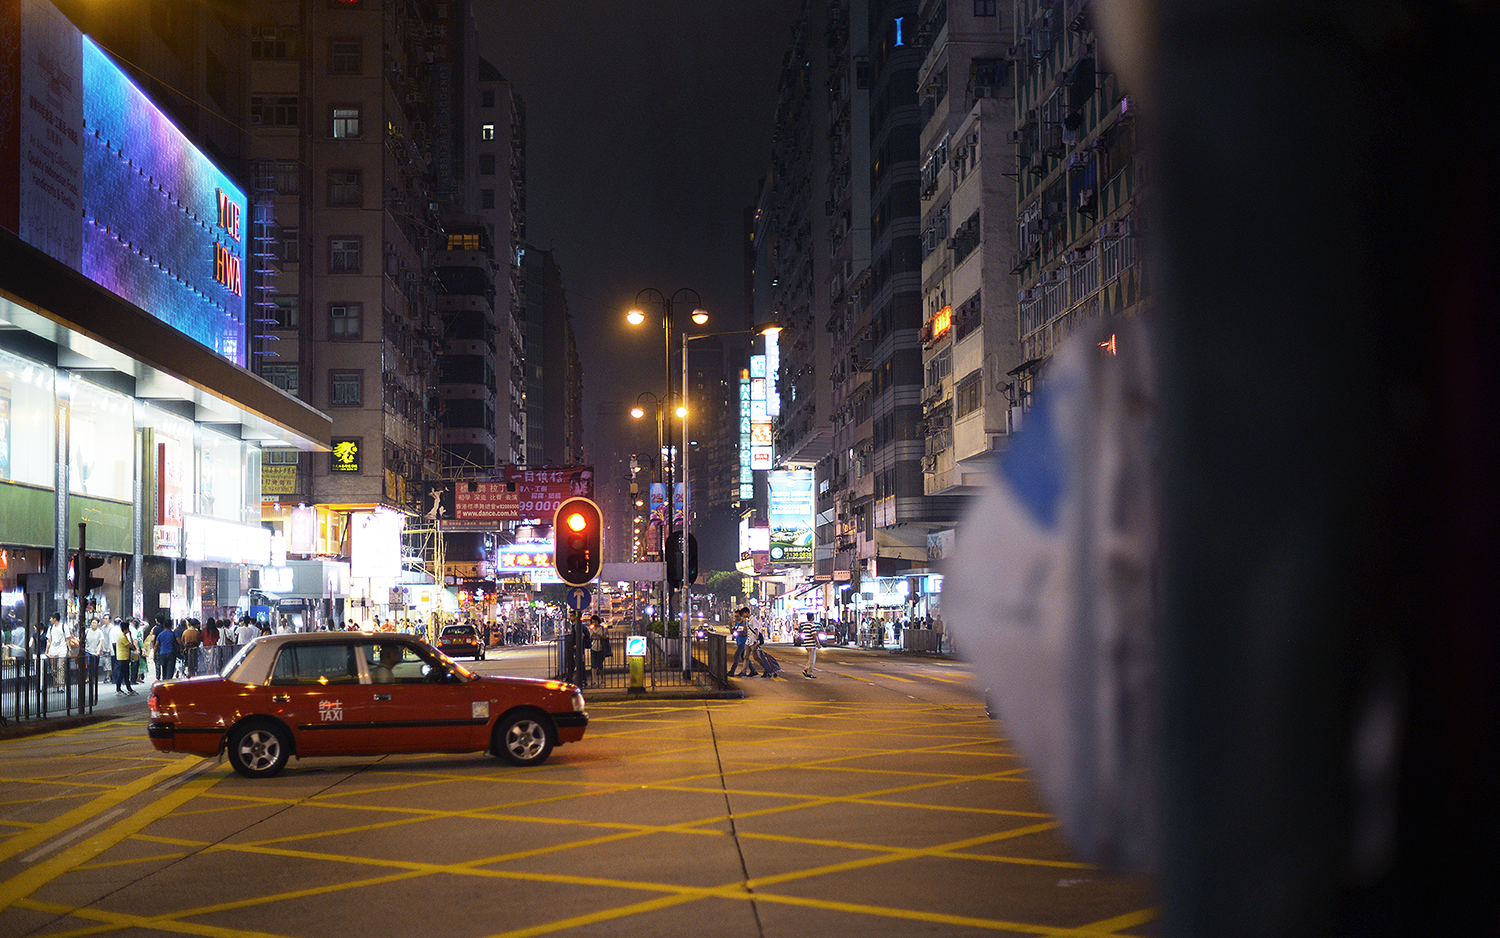 Hong Kong Taxi Intersection - Hong Kong, China | Night / FOREVERVANNY.com